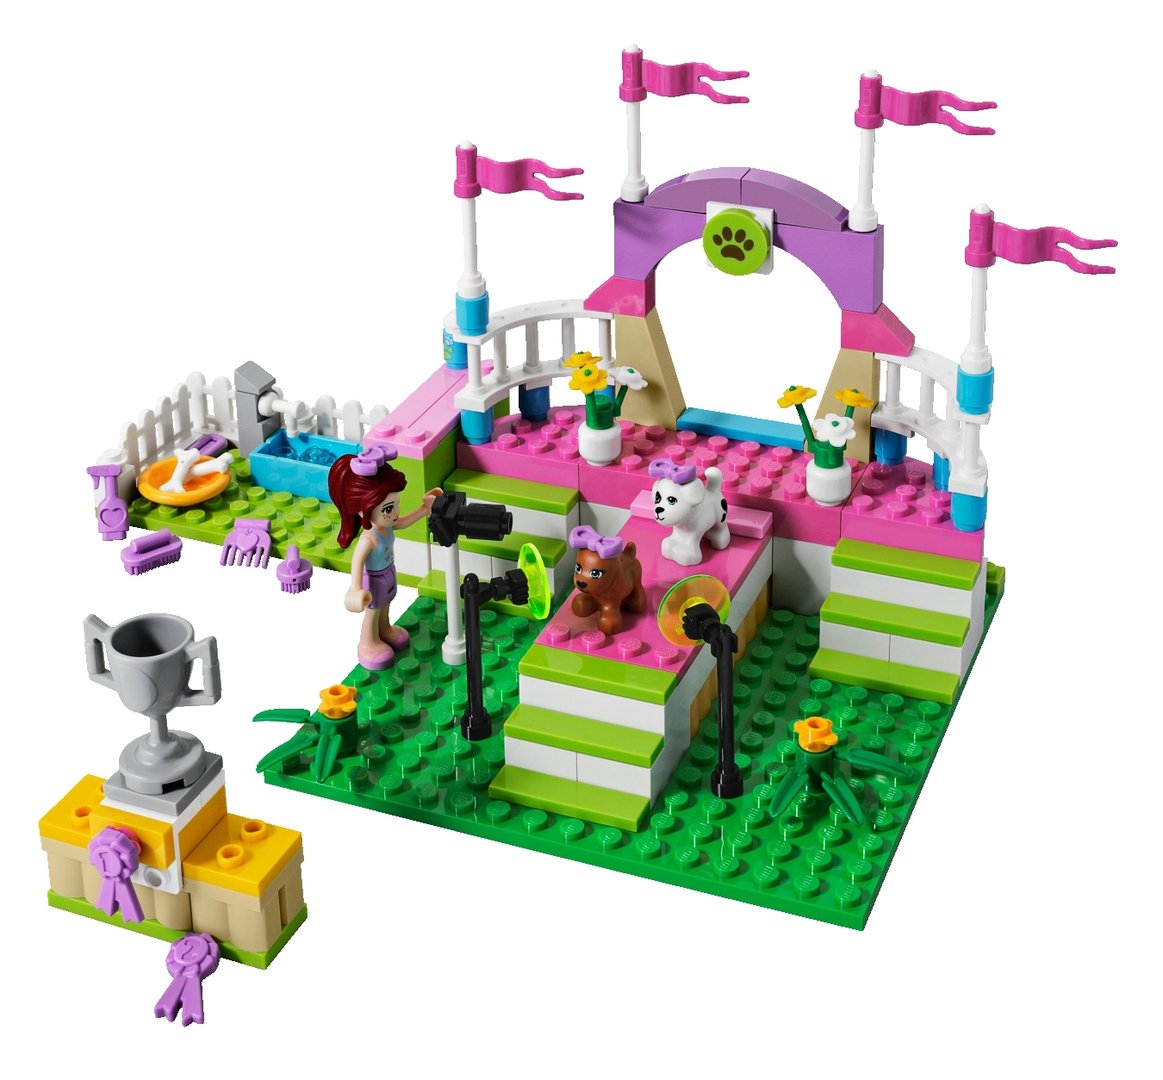 lego friends 3942 die gro e hundeschau spielzeug berlin teltow. Black Bedroom Furniture Sets. Home Design Ideas